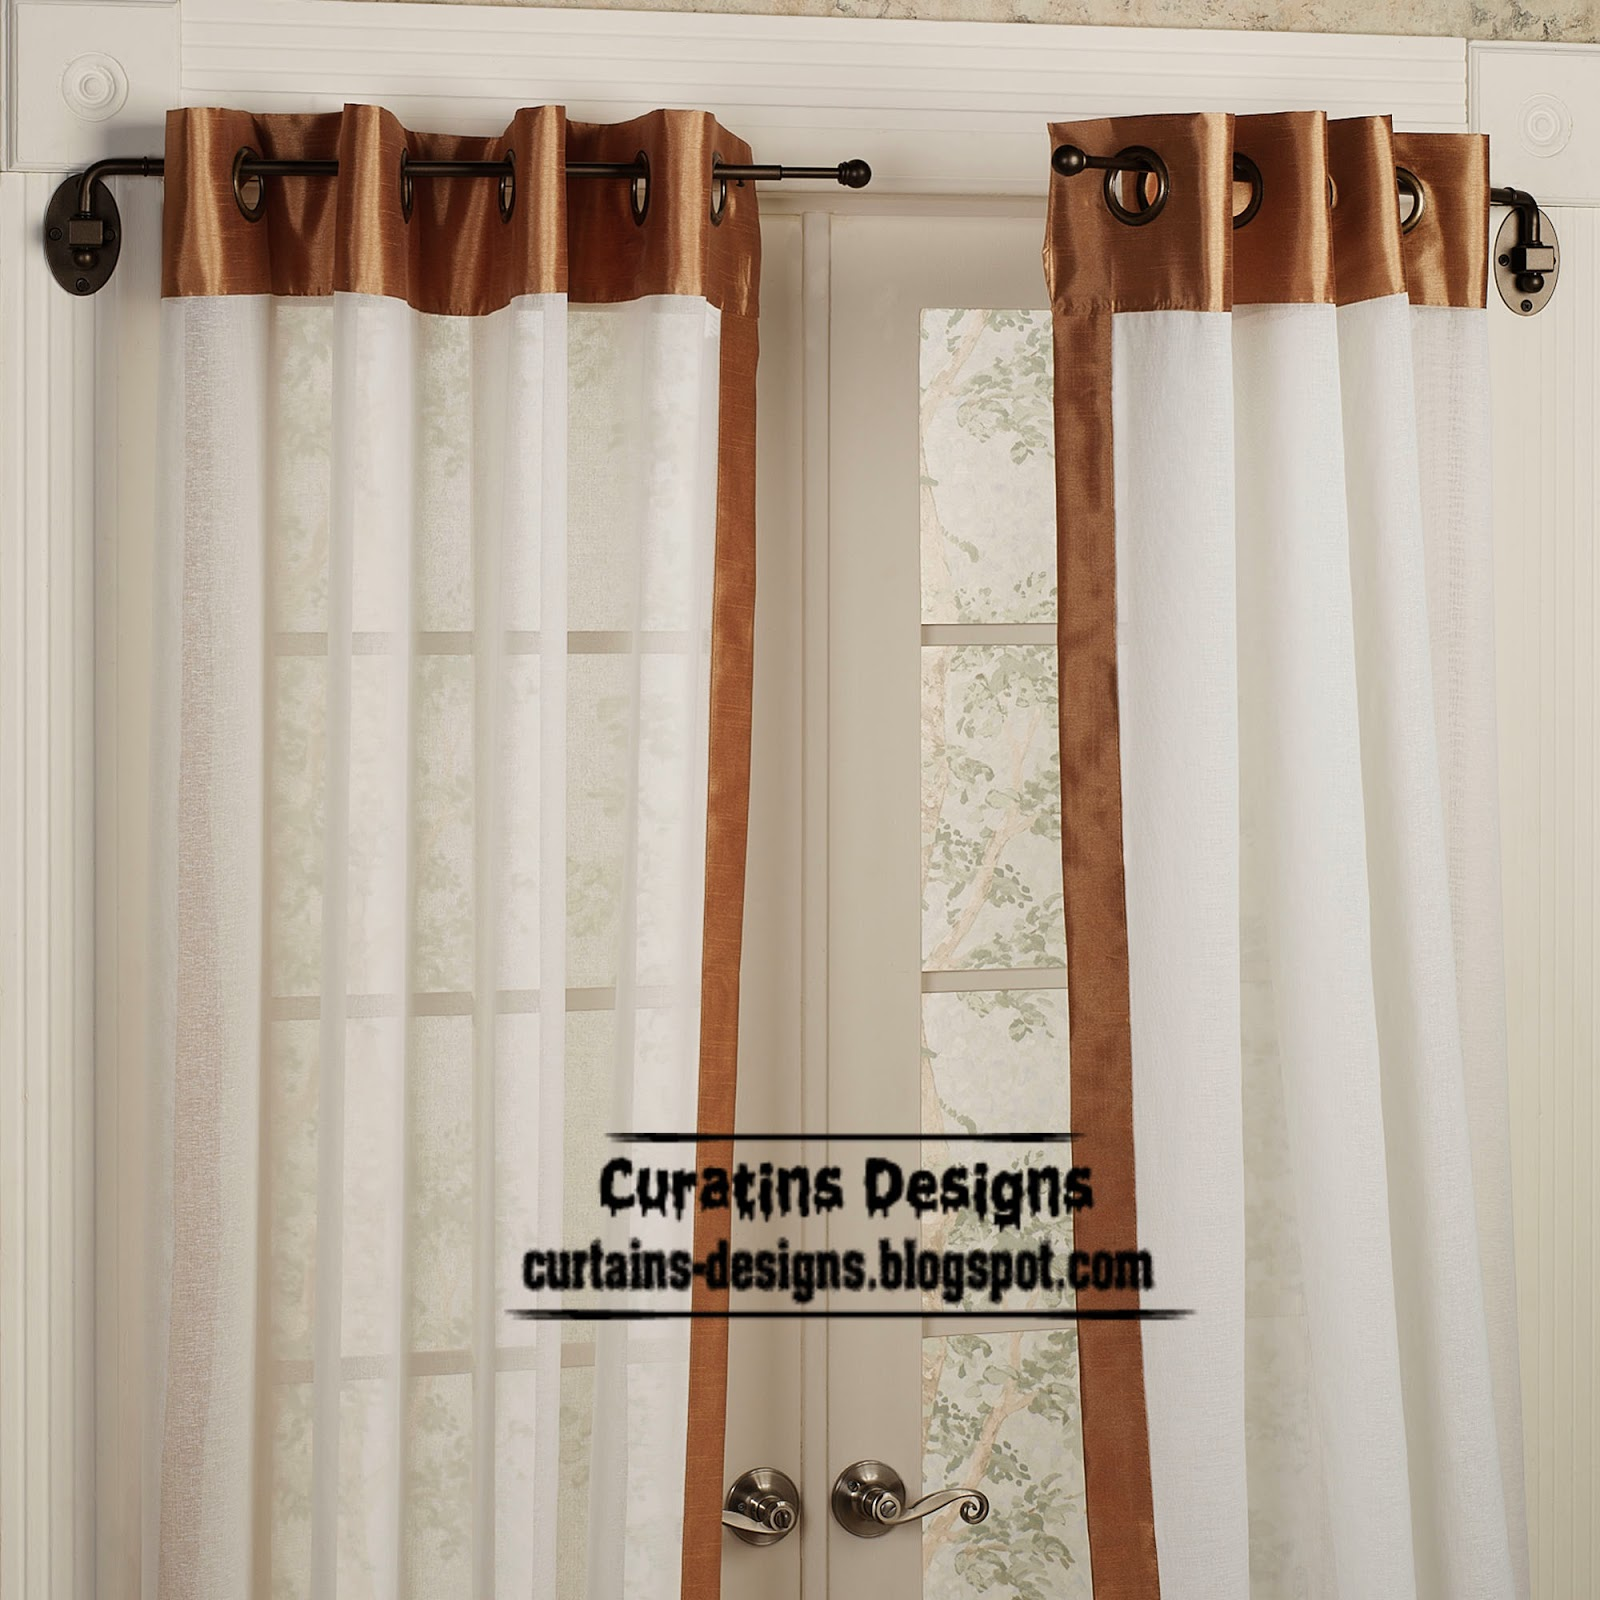 Swing arm curtain rod the best window covering ideas for Unique window designs